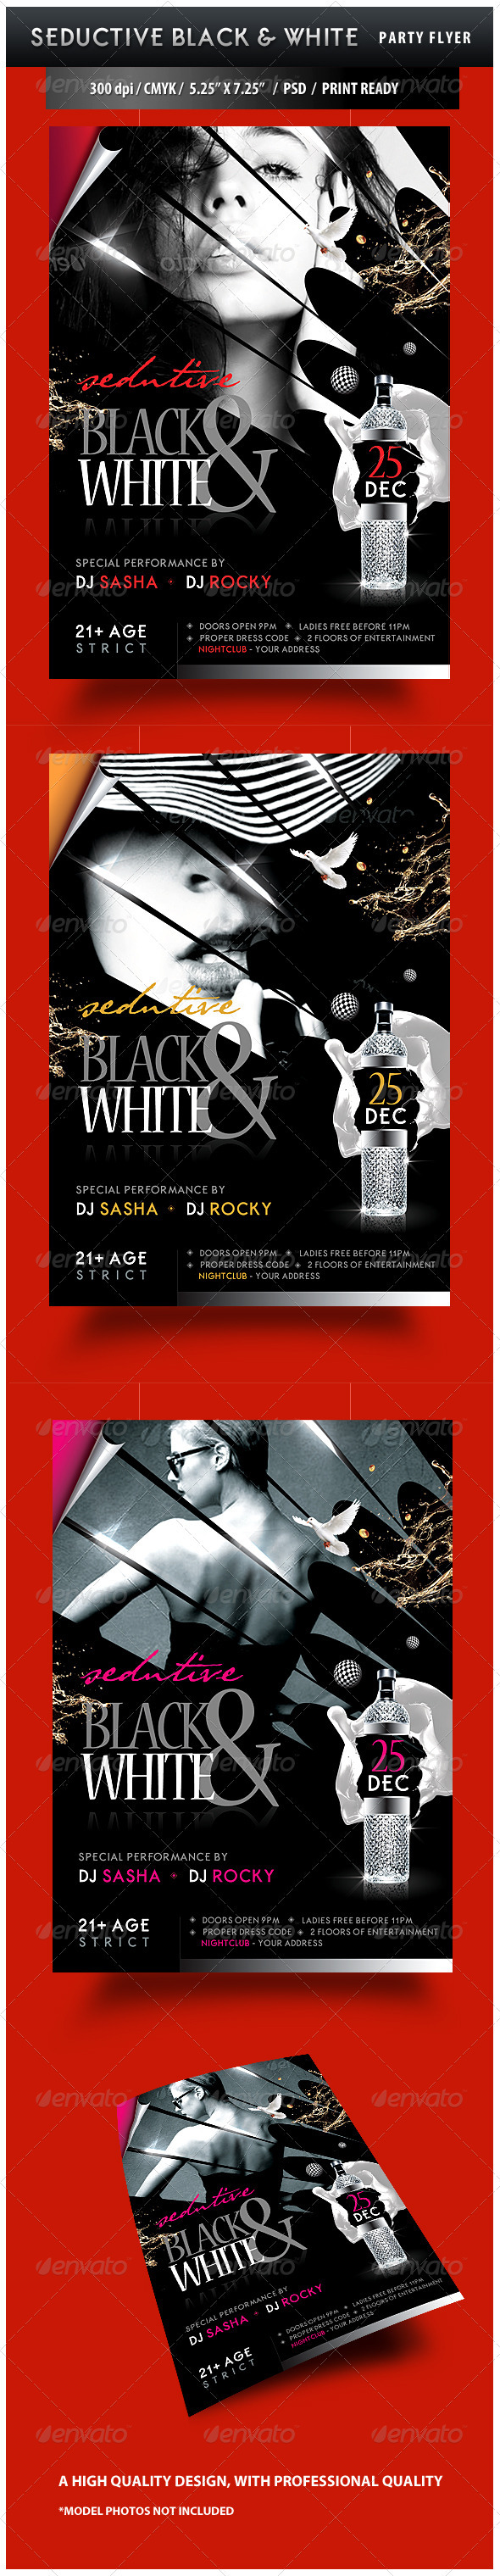 Seductive Black and White Party Flyer - Clubs & Parties Events